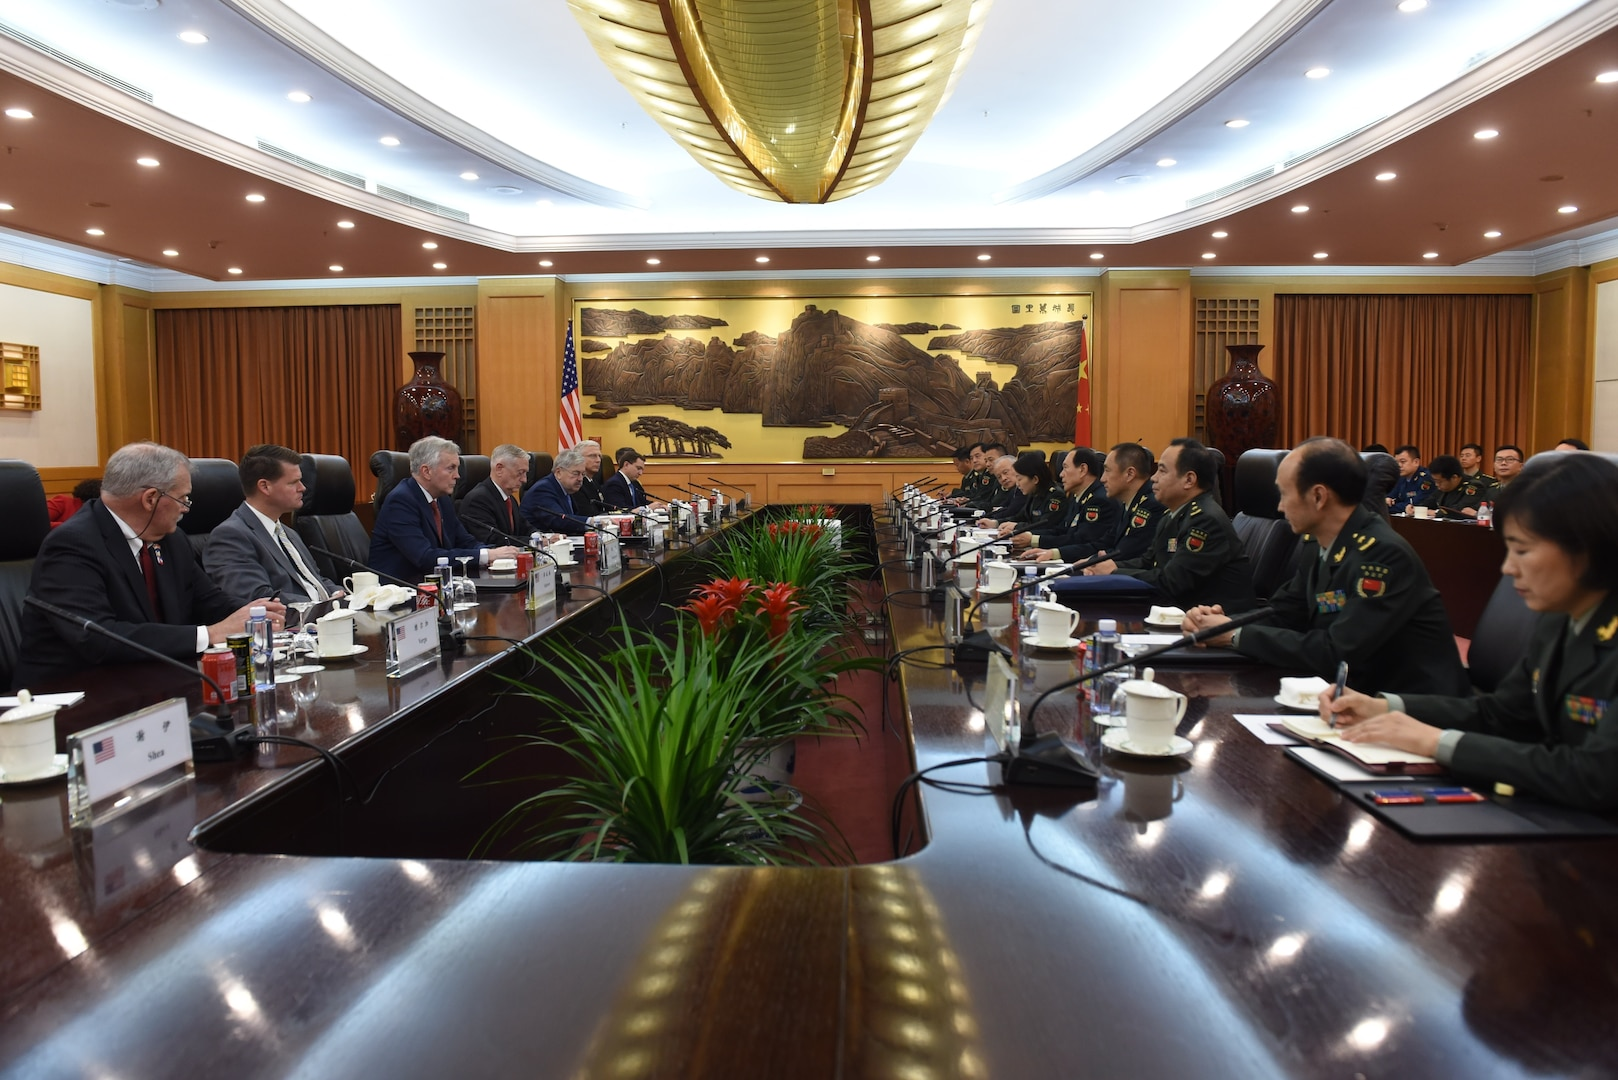 U.S. Secretary of Defense James N. Mattis meets with China's Minister of National Defense Wei Fenghe at the Bayi Building, China's Ministry of National Defense in Beijing, June 27, 2018.